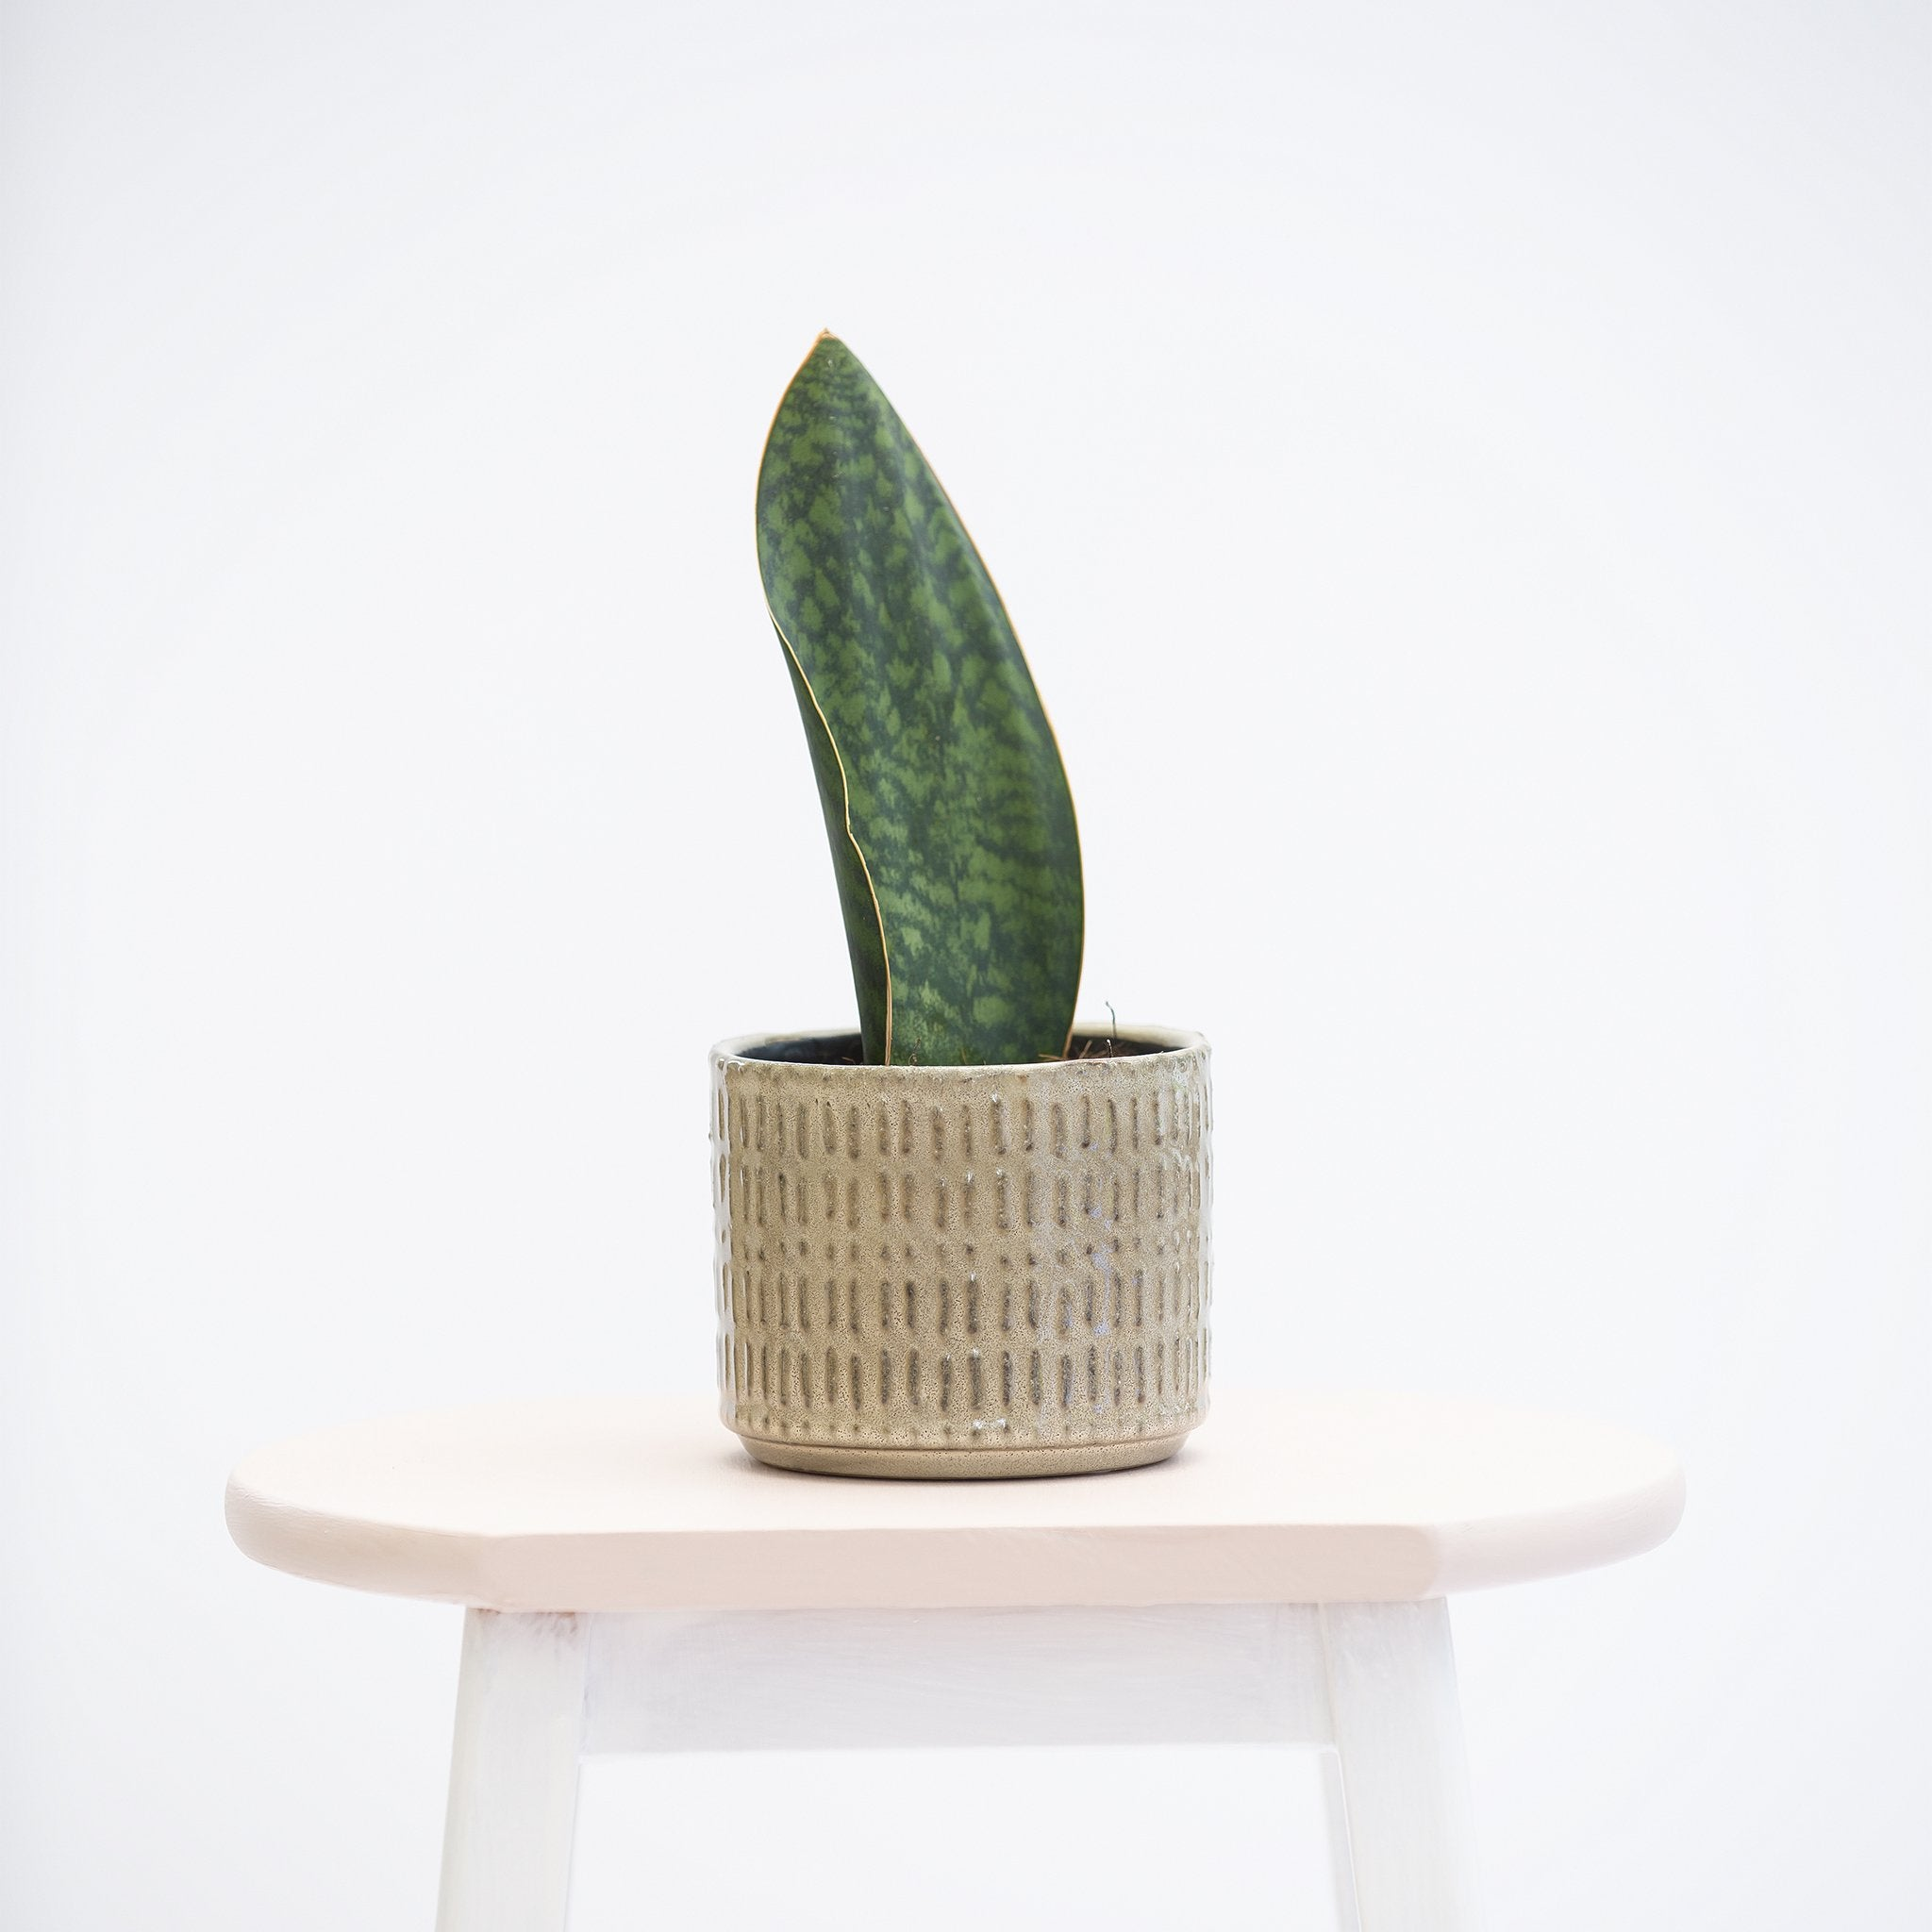 Sansevieria Victoria or Snake Plant Victoria. Smaller single stem plant with lovely green pattern foliage. Displayed in San Fran plant pot.